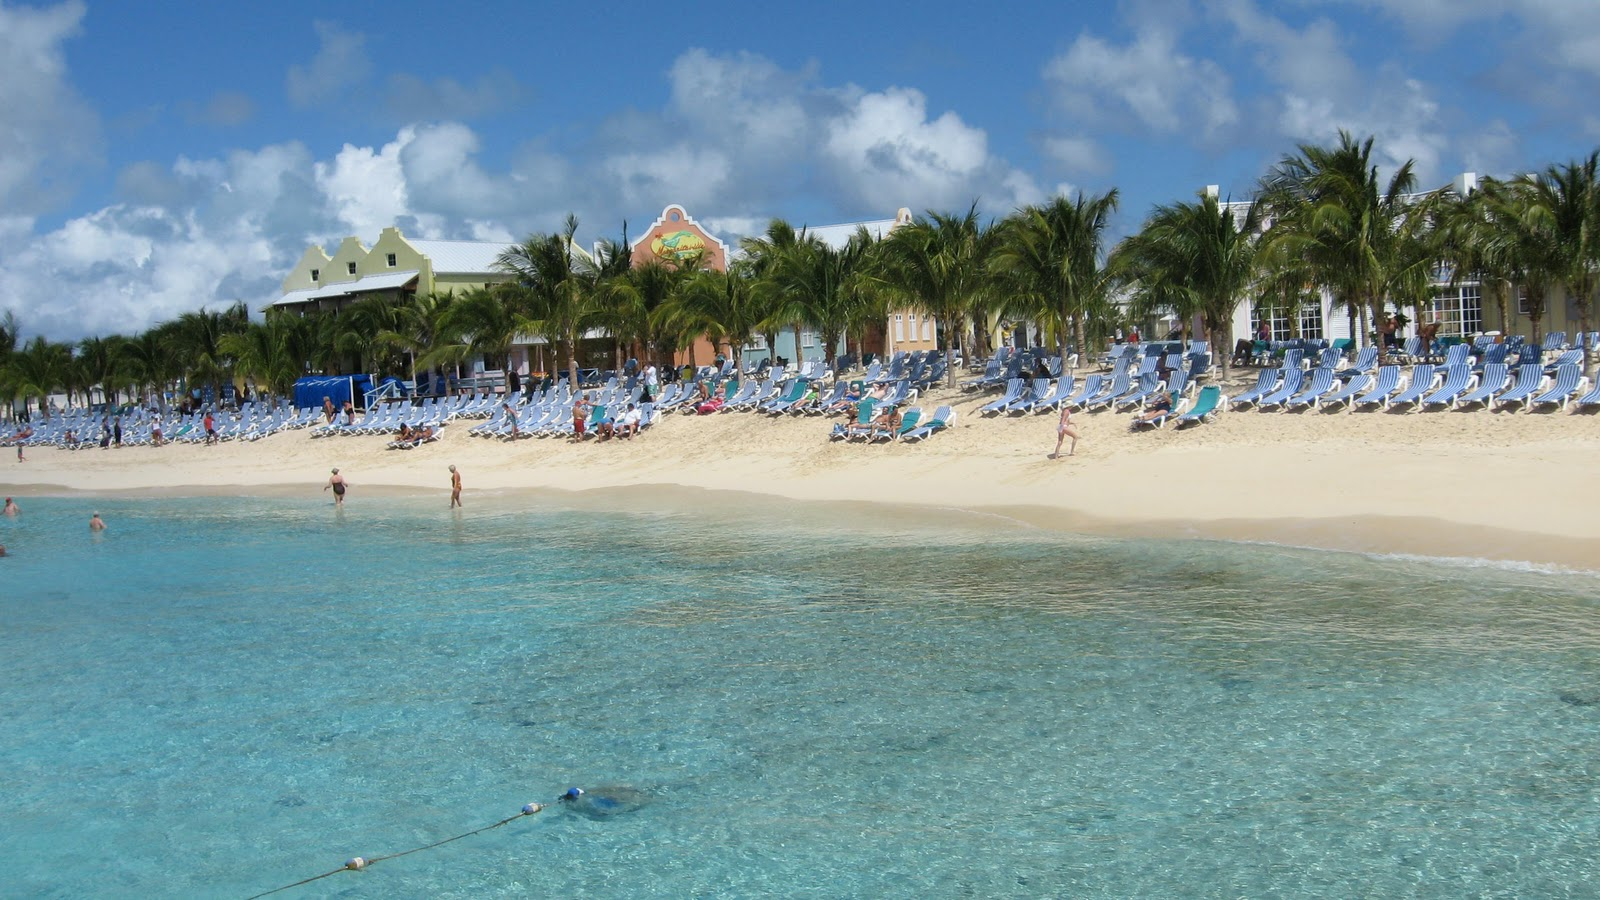 27 Facebook Eastern Caribbean Cruise Weather In February